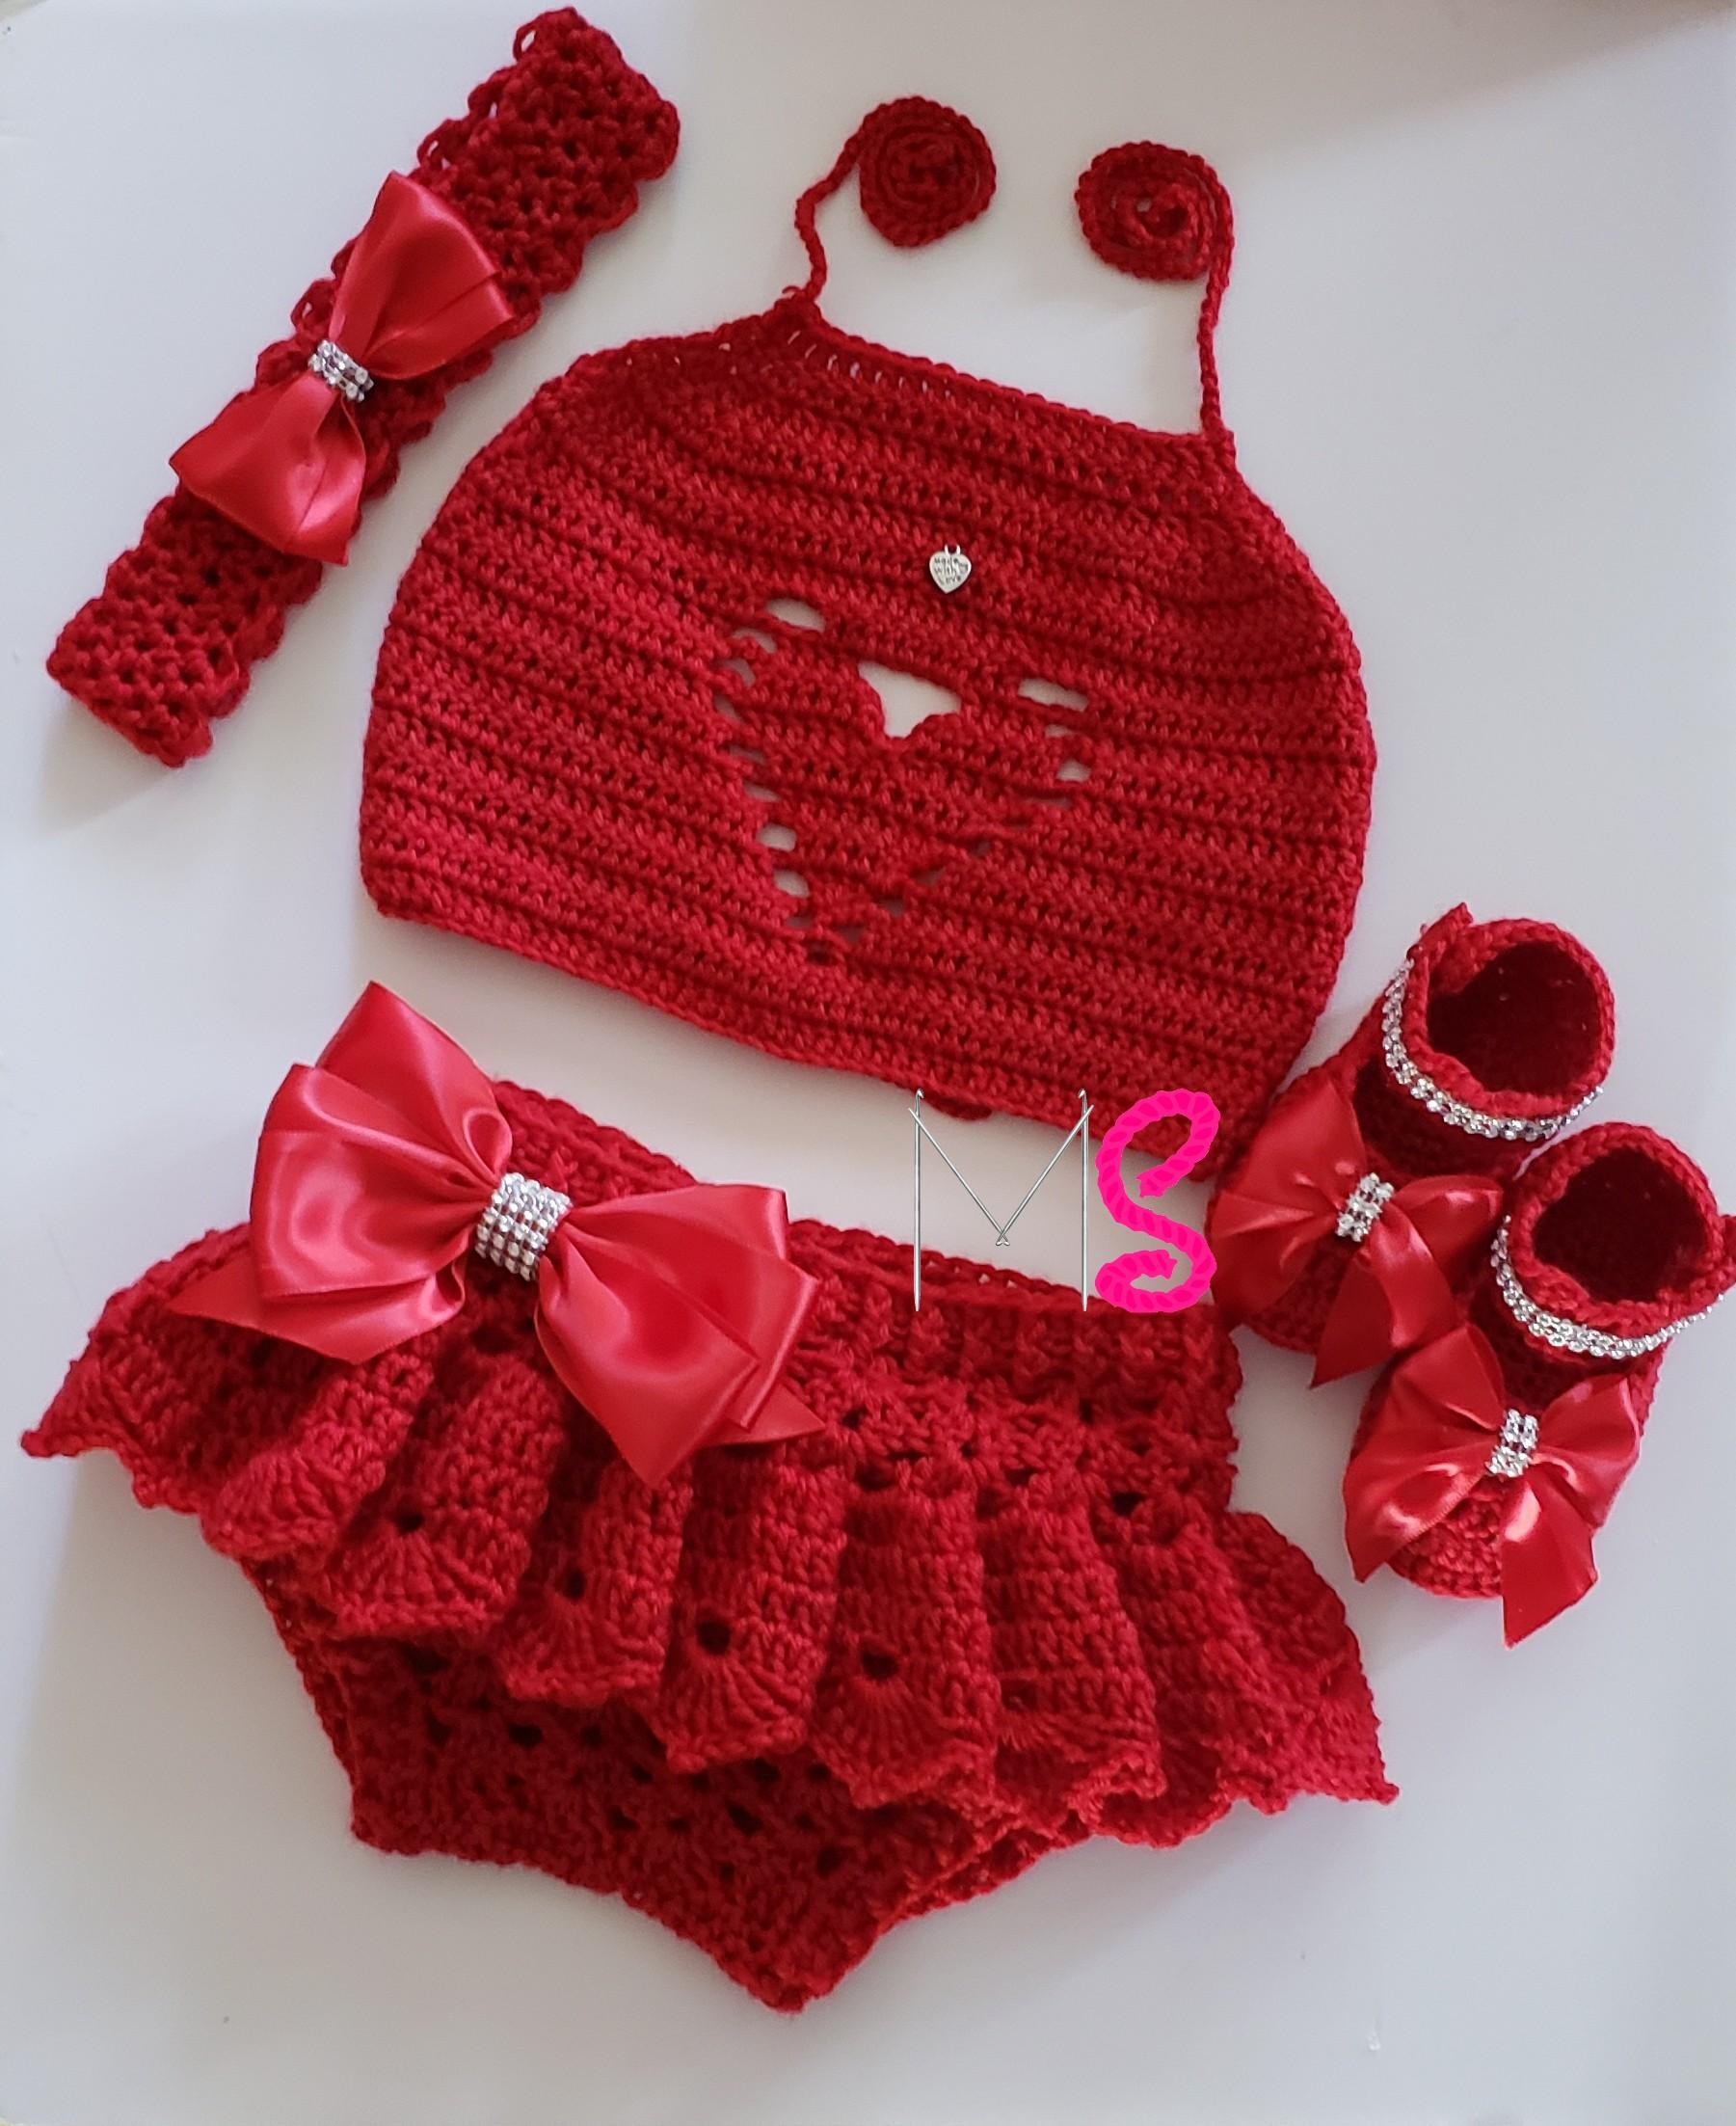 Bad Set For Baby Sweetheart Baby Set Sorry I Freehandmade These I Have No Pattern